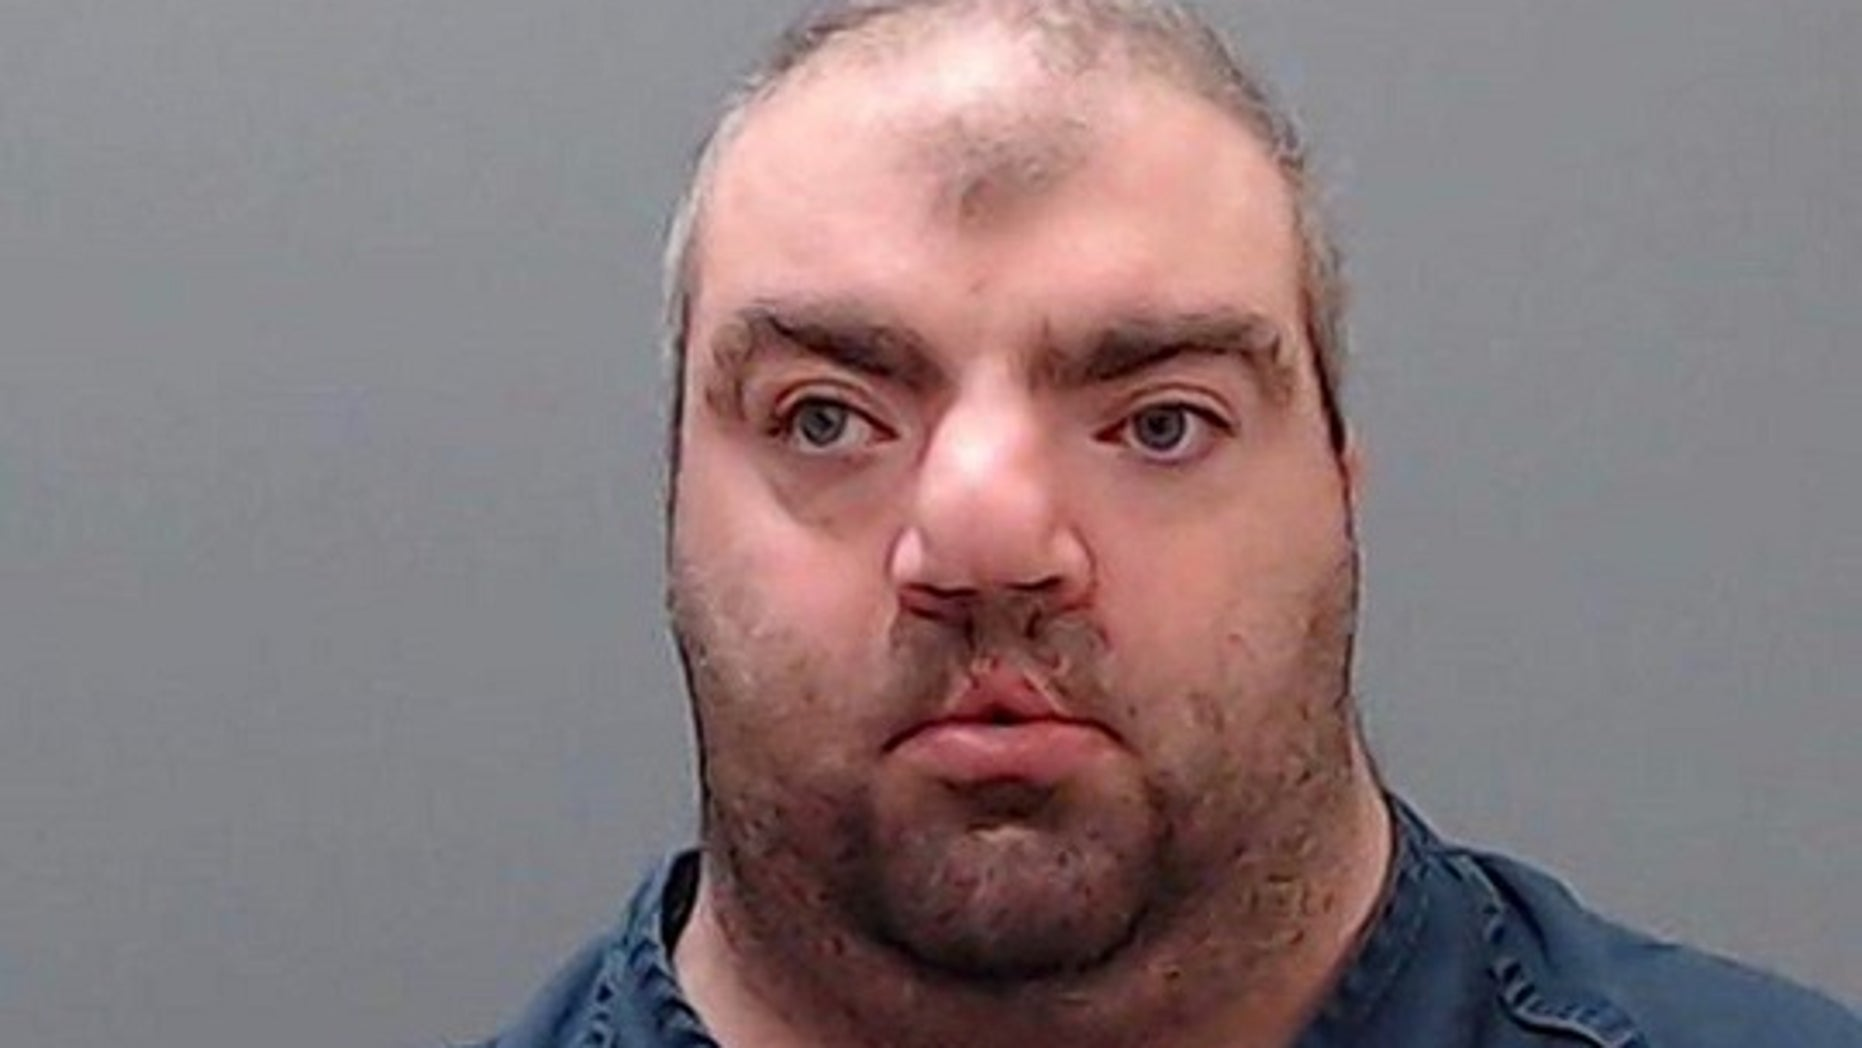 A Pennsylvania man who was convicted of attempted rape wrote journal entries describing the crime in explicit detail.